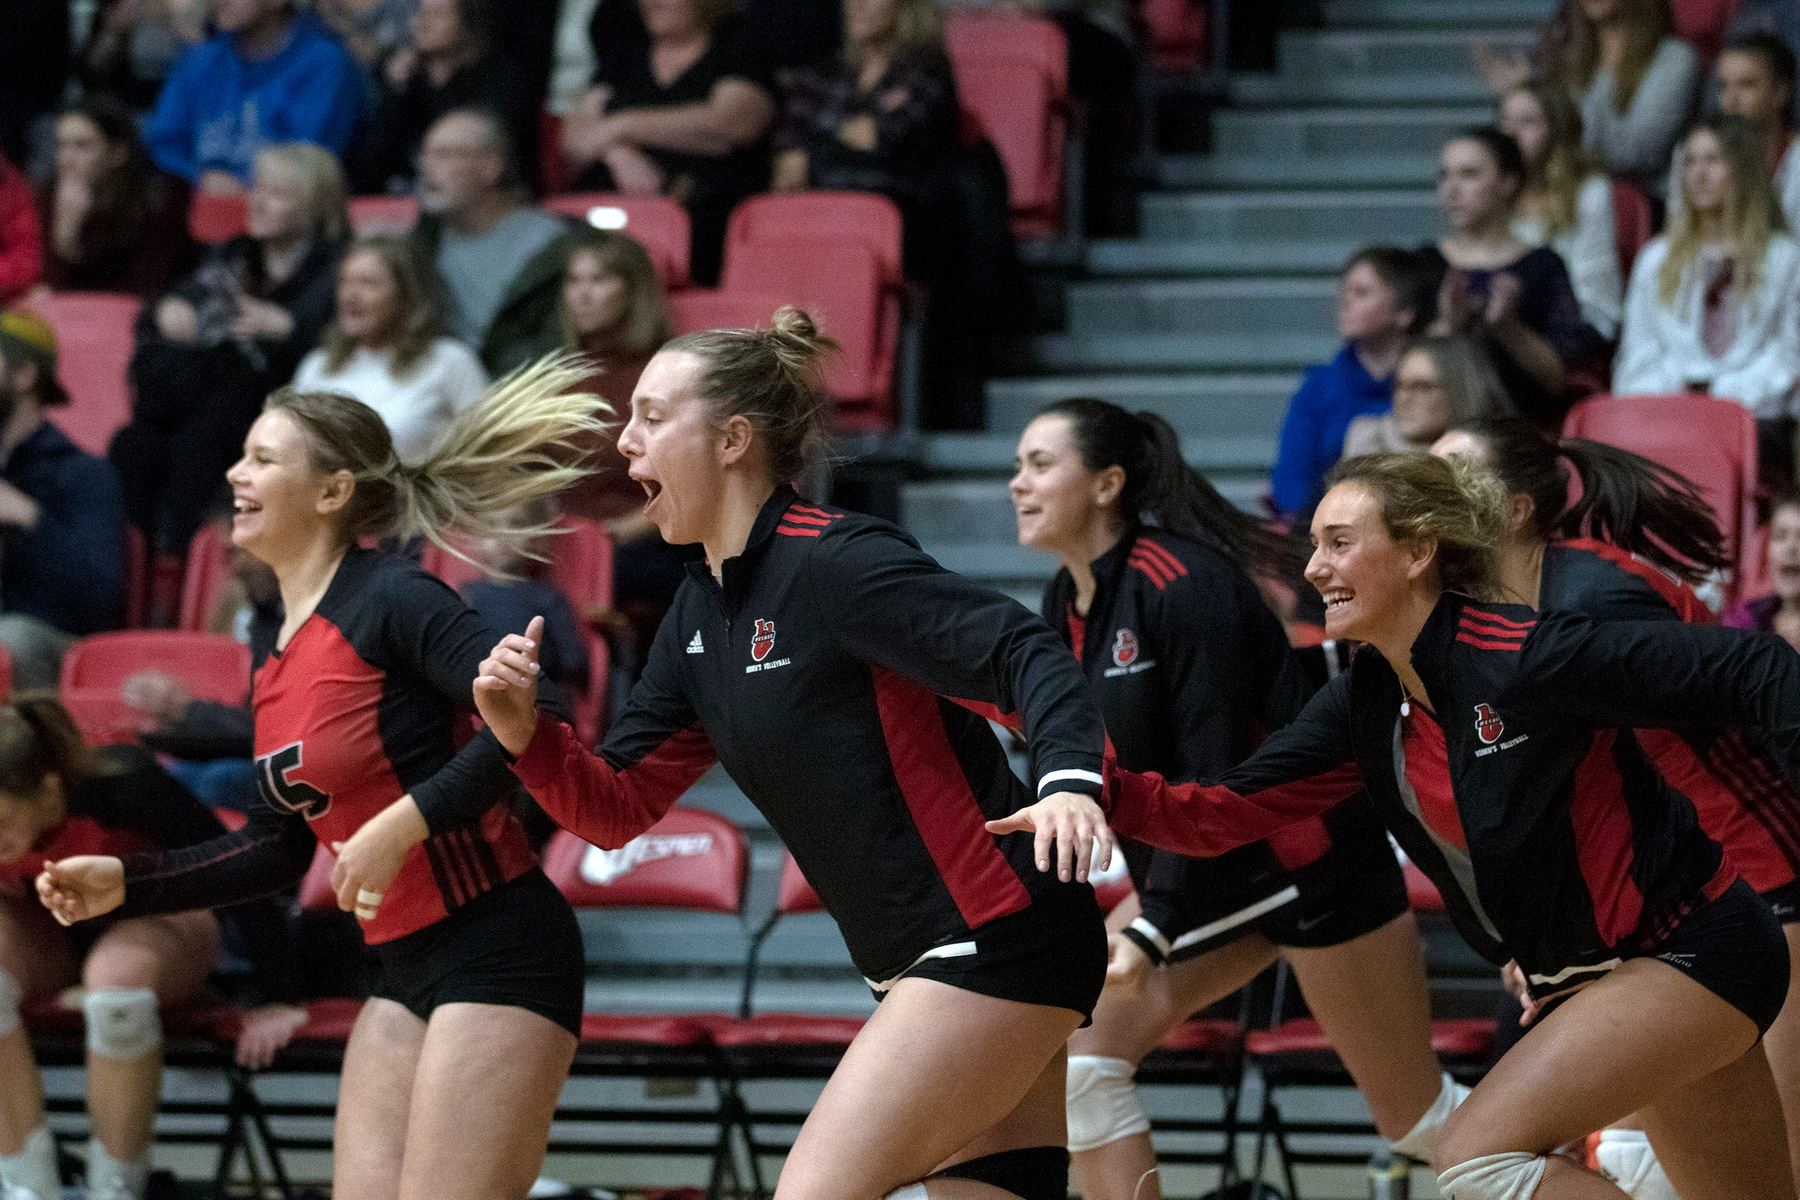 From left, Emily Yaeger, Jess Friesen, Mikaela Cameron and Felixe Sturk-Lussier storm the floor following the Wesmen women's volleyball team's win over the Mantioba Bisons, Nov. 22, 2019. (David Larkins/Wesmen Athletics)